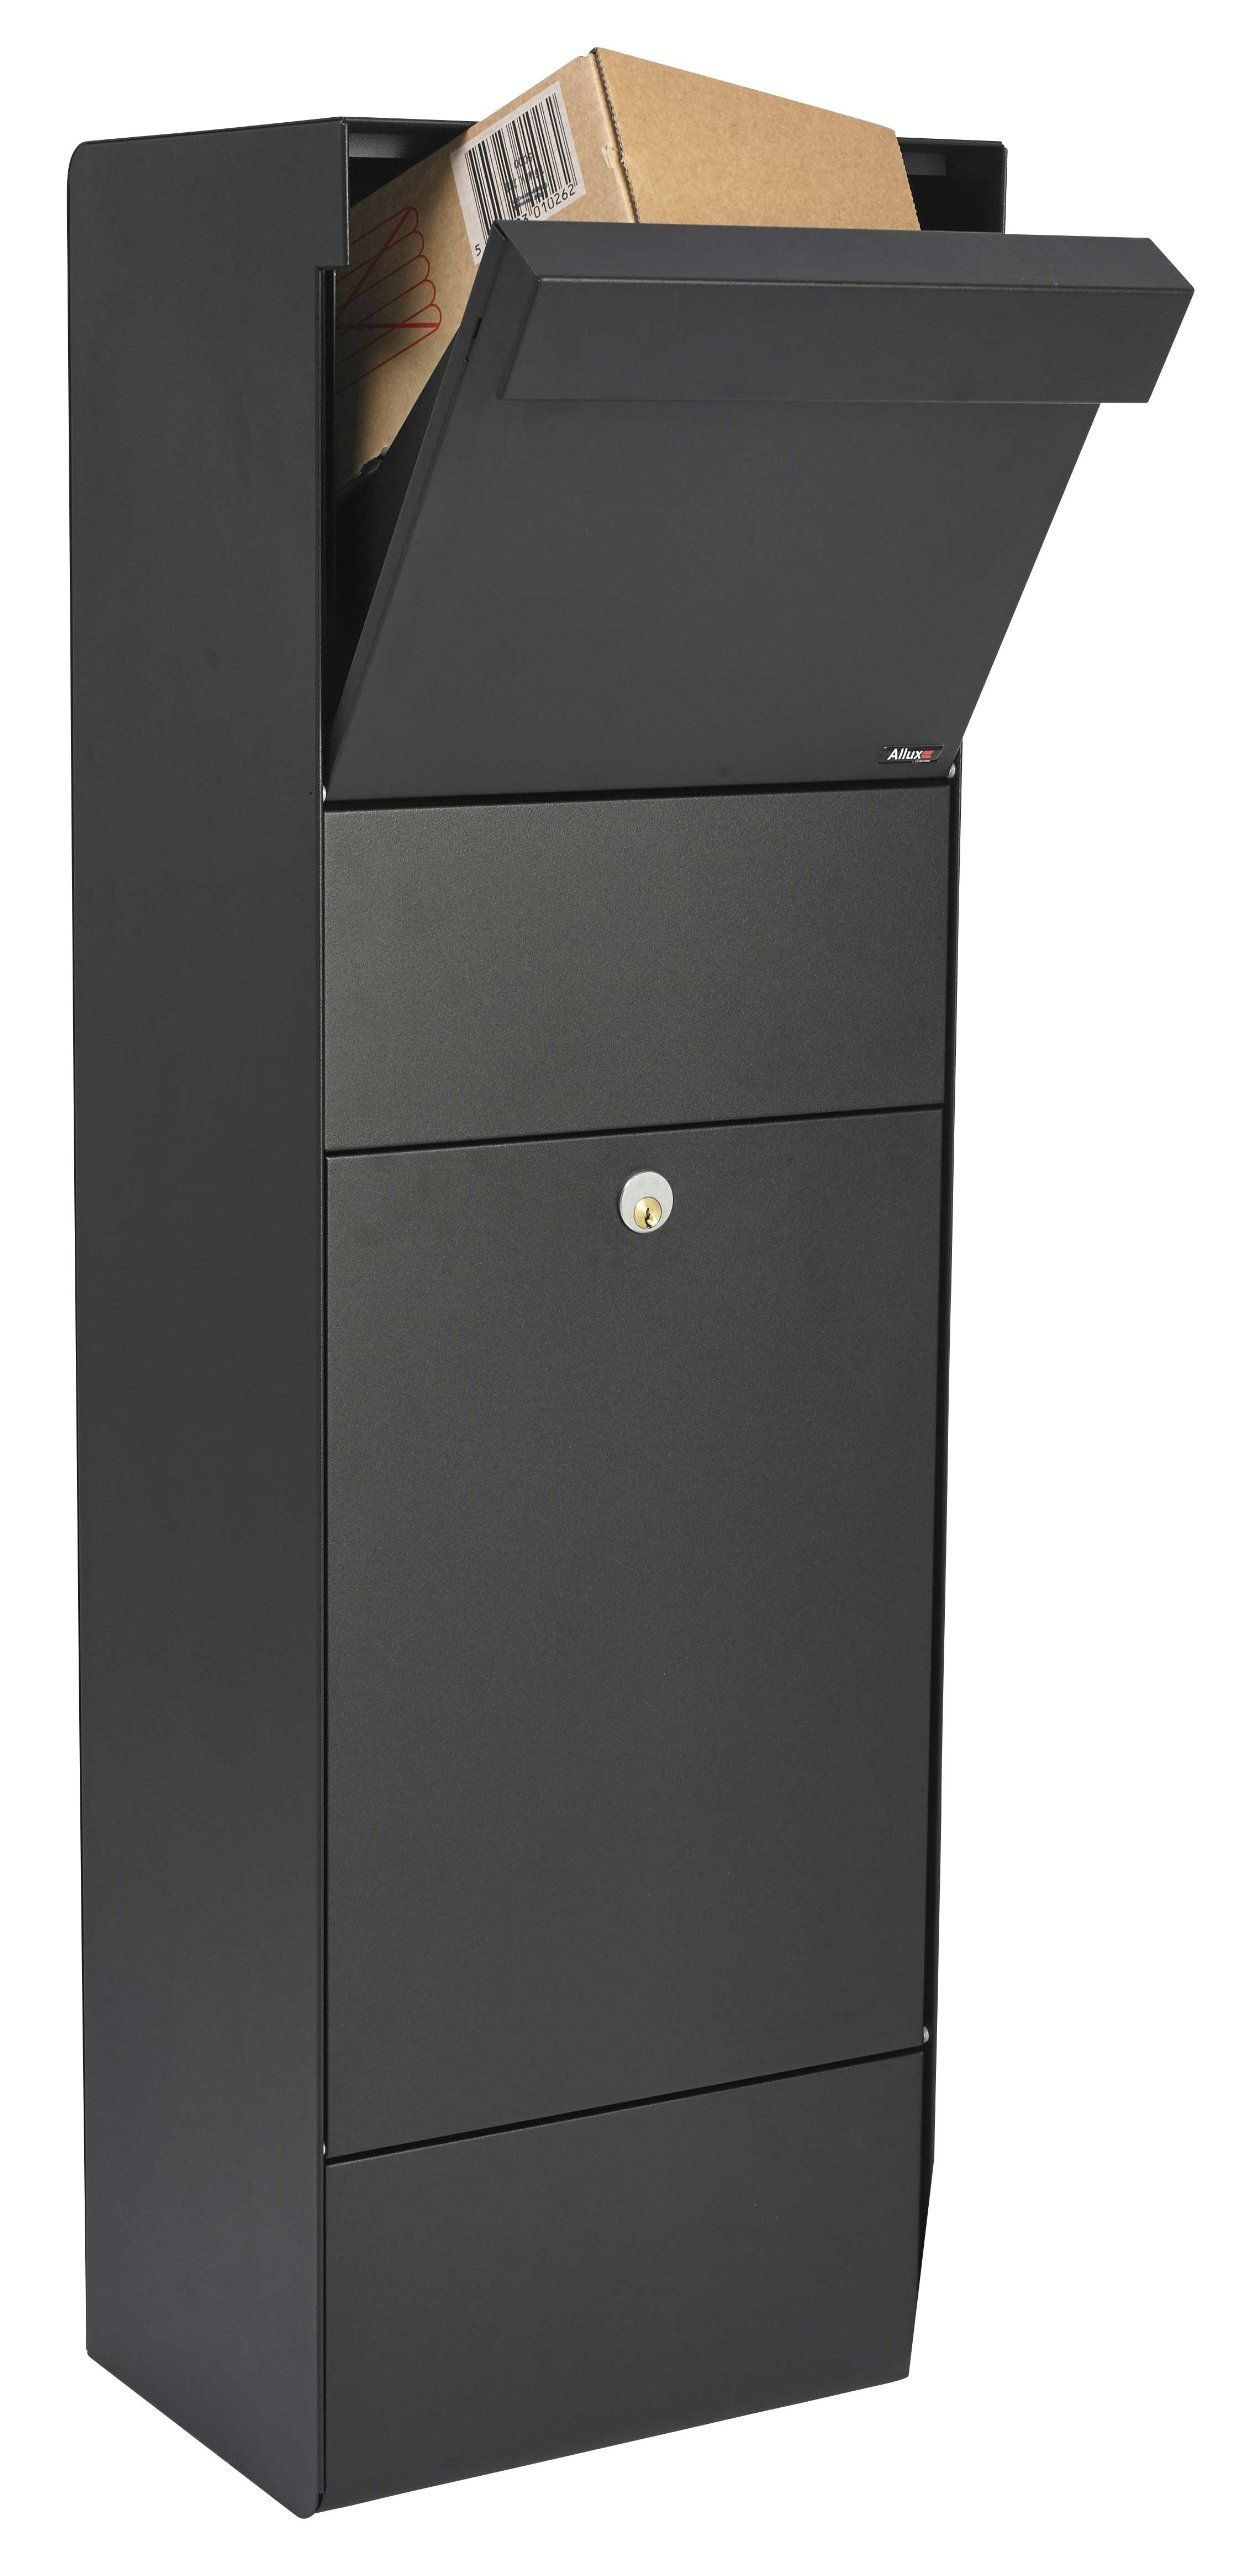 qualarc alx grp bk allux series grandform locking mail parcel box black security mailboxes. Black Bedroom Furniture Sets. Home Design Ideas